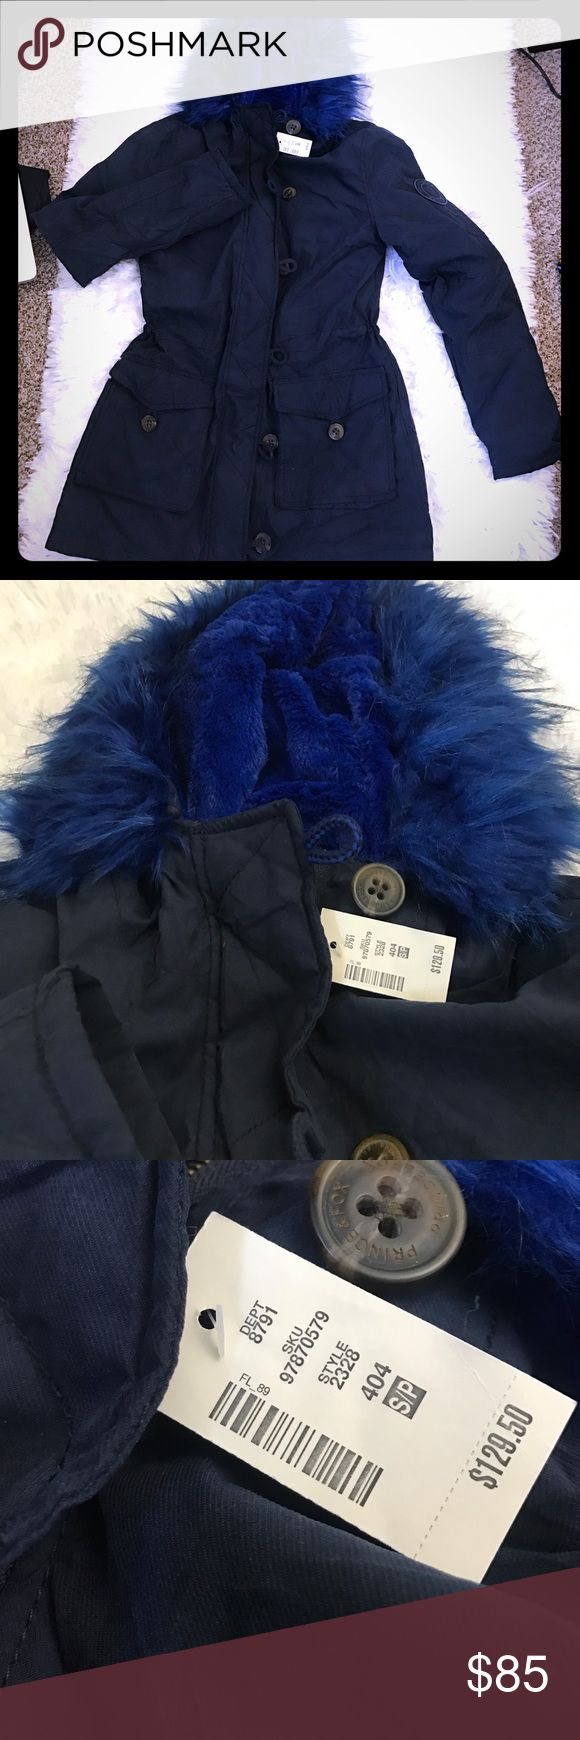 Aero Prince & Fox Sherpa Lined Parka NWT Blue Fur Brand new with tags! Removable faux fur trim Aeropostale Jackets & Coats